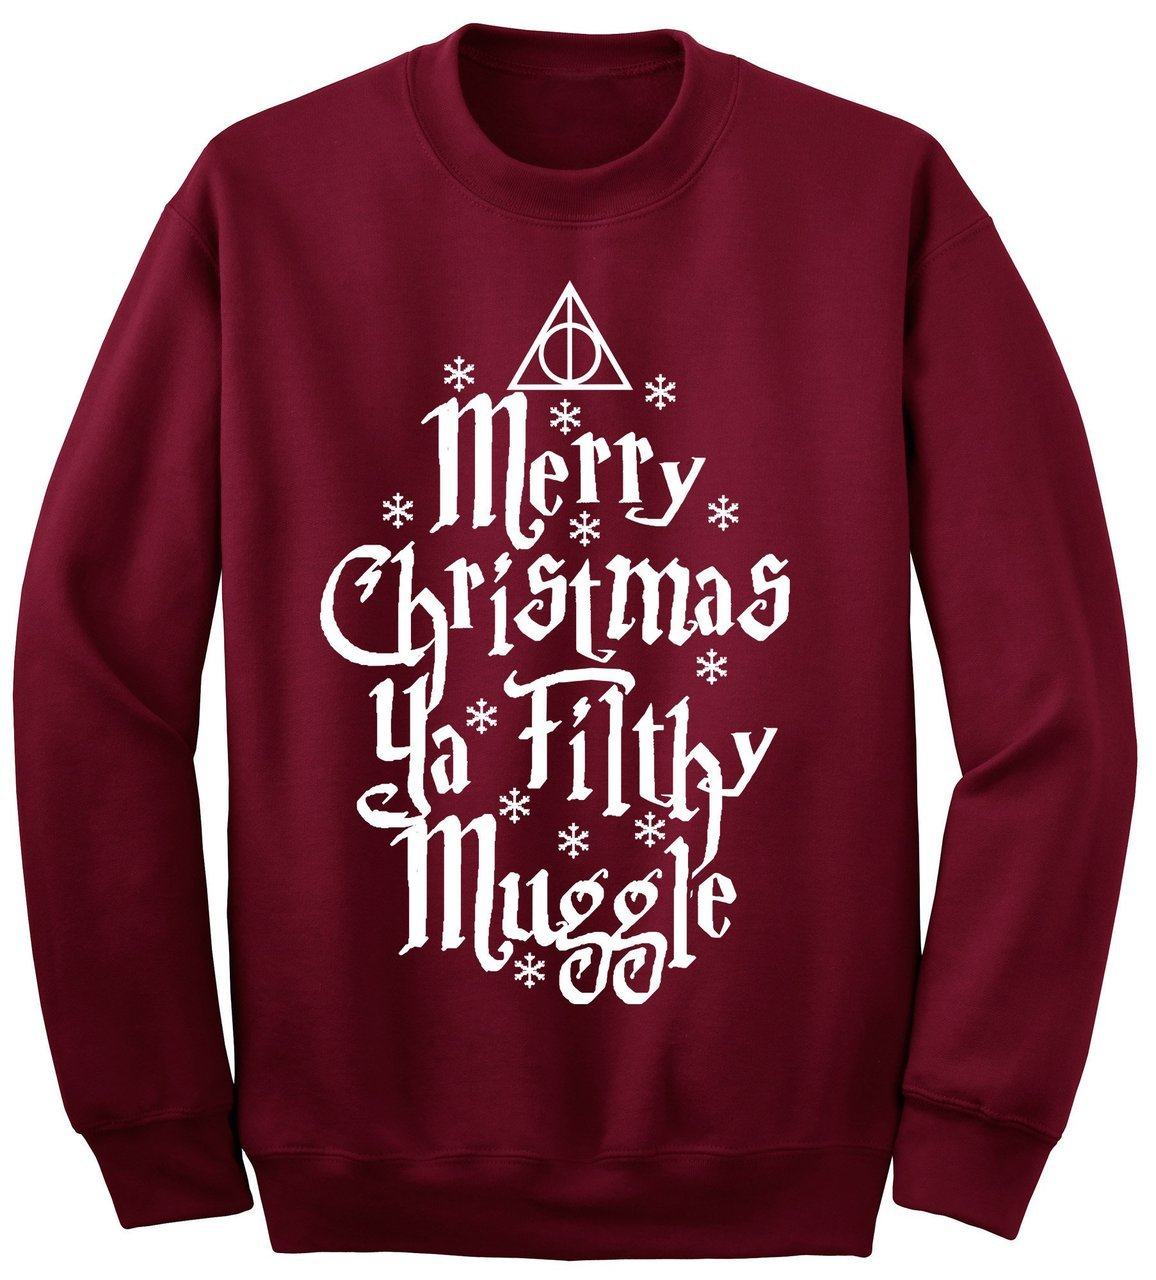 christmas, christmas sweater, filthy muggle, harry potter, holiday sweater